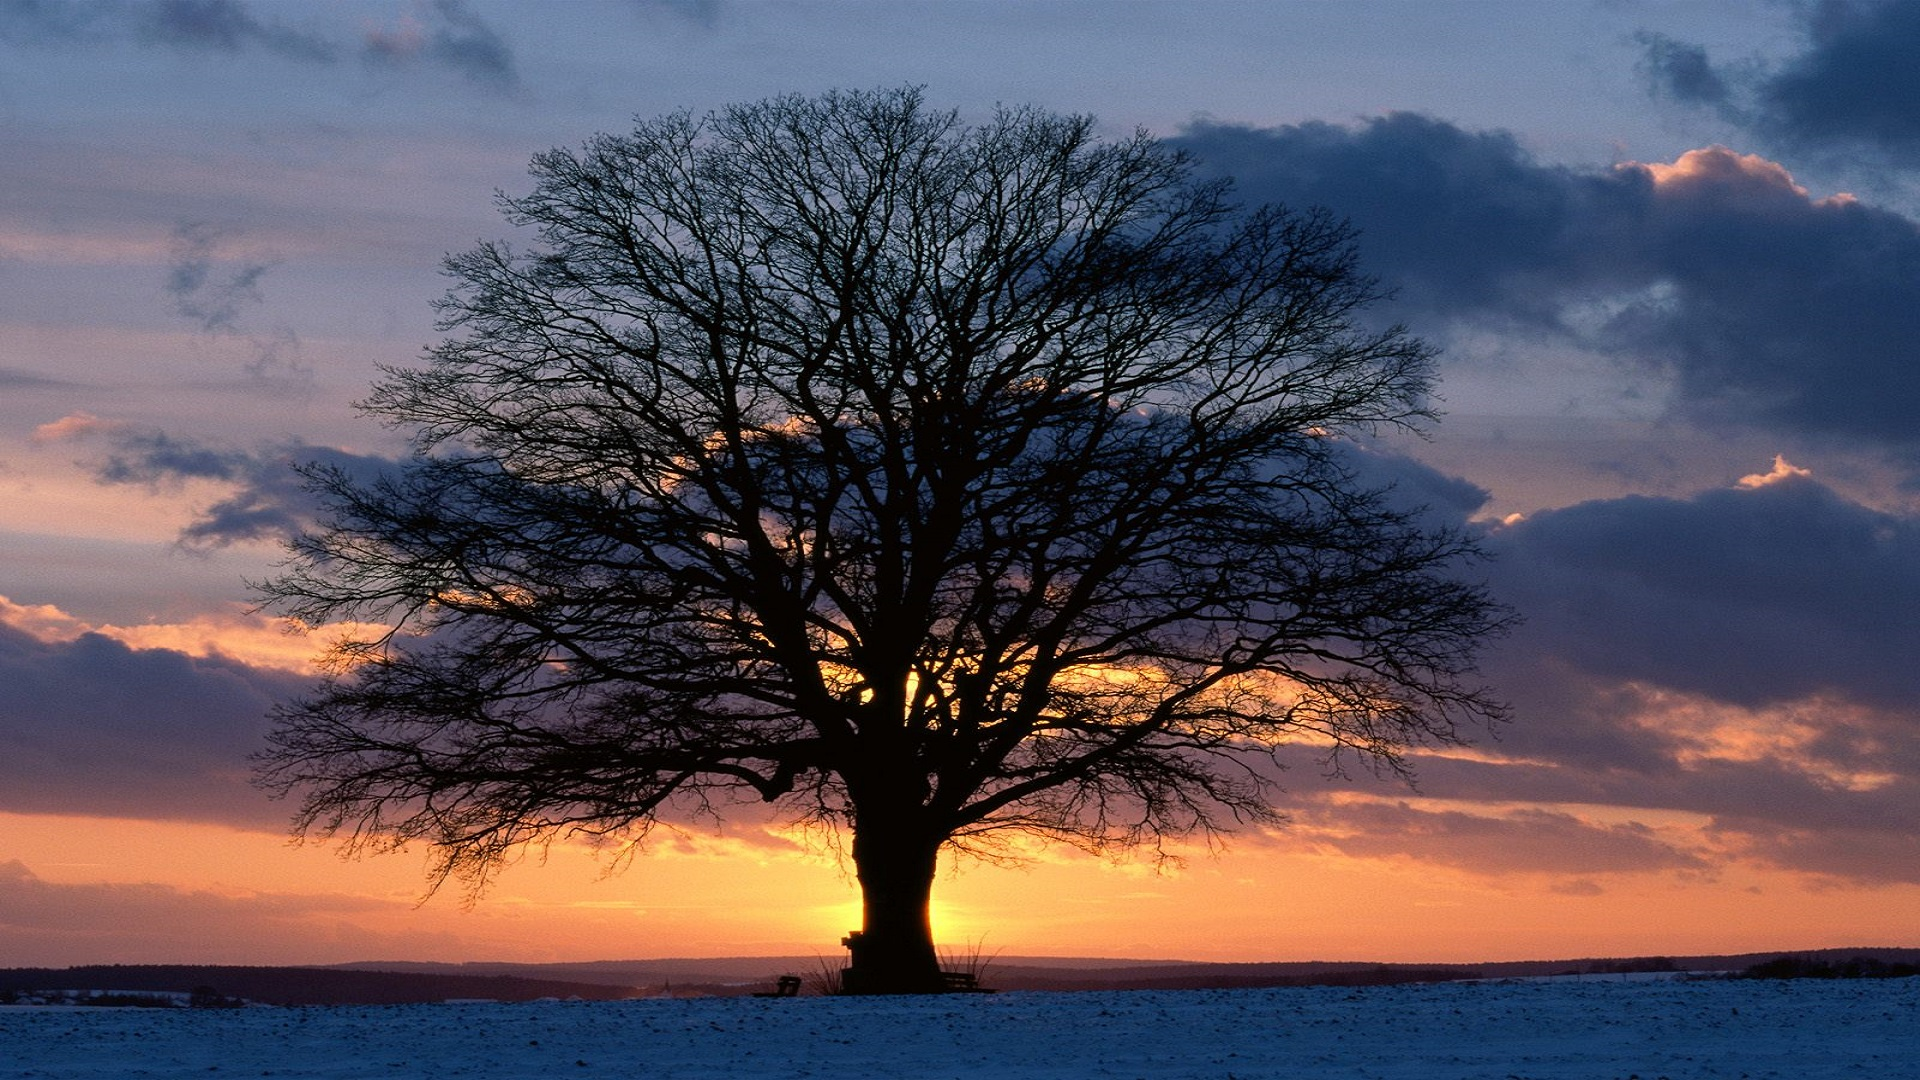 Tree In Sunset Free Hd Wallpapers Hd Wallpaper